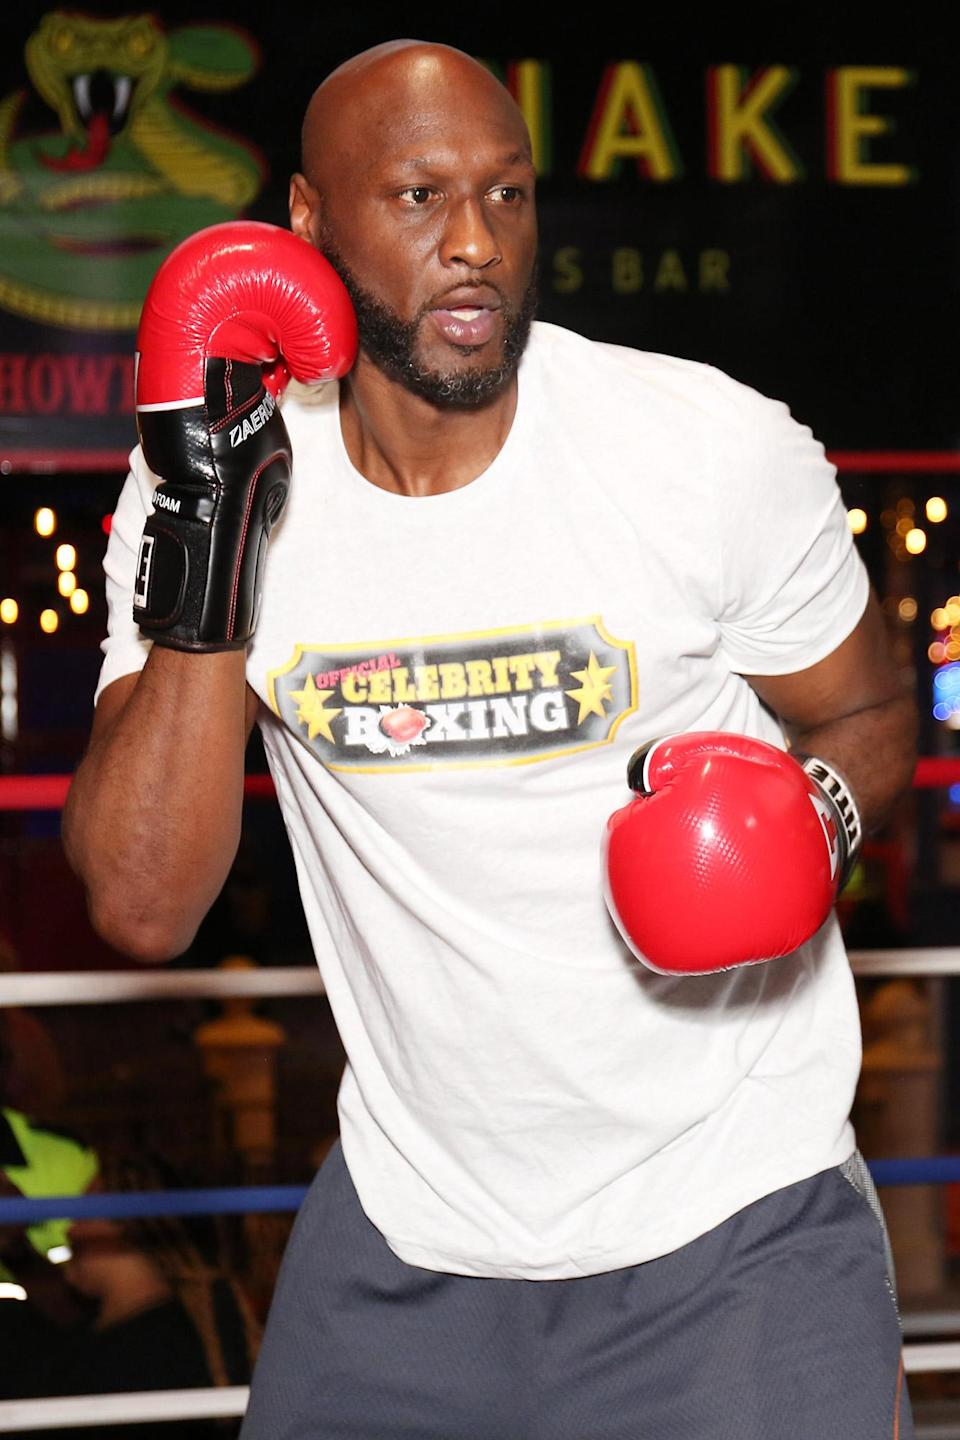 <p>Lamar Odom is seen training for a celebrity boxing match against Aaron Carter on June 8 in Atlantic City, New Jersey. </p>